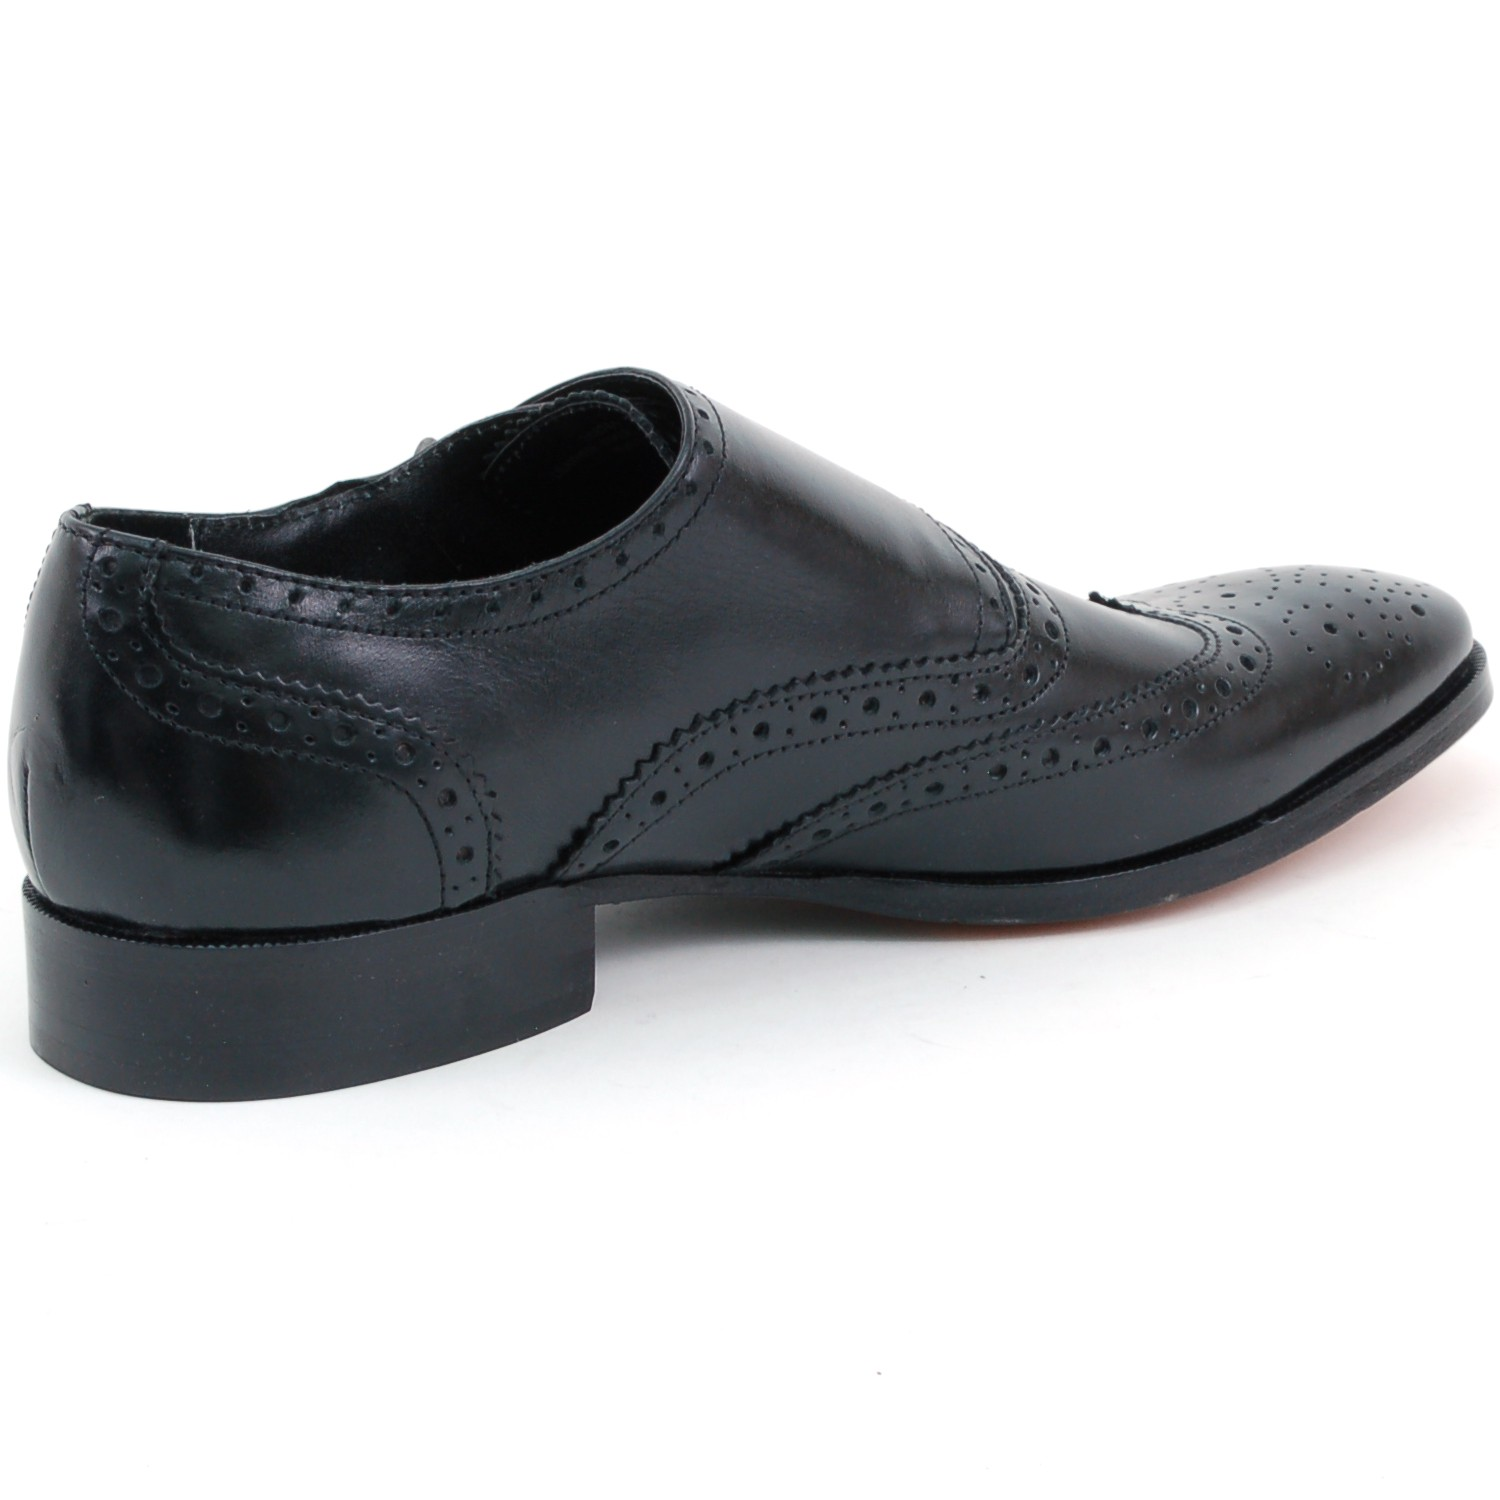 Giorgio Brutini Double Monk Strap Loafer Mens Dress Shoes